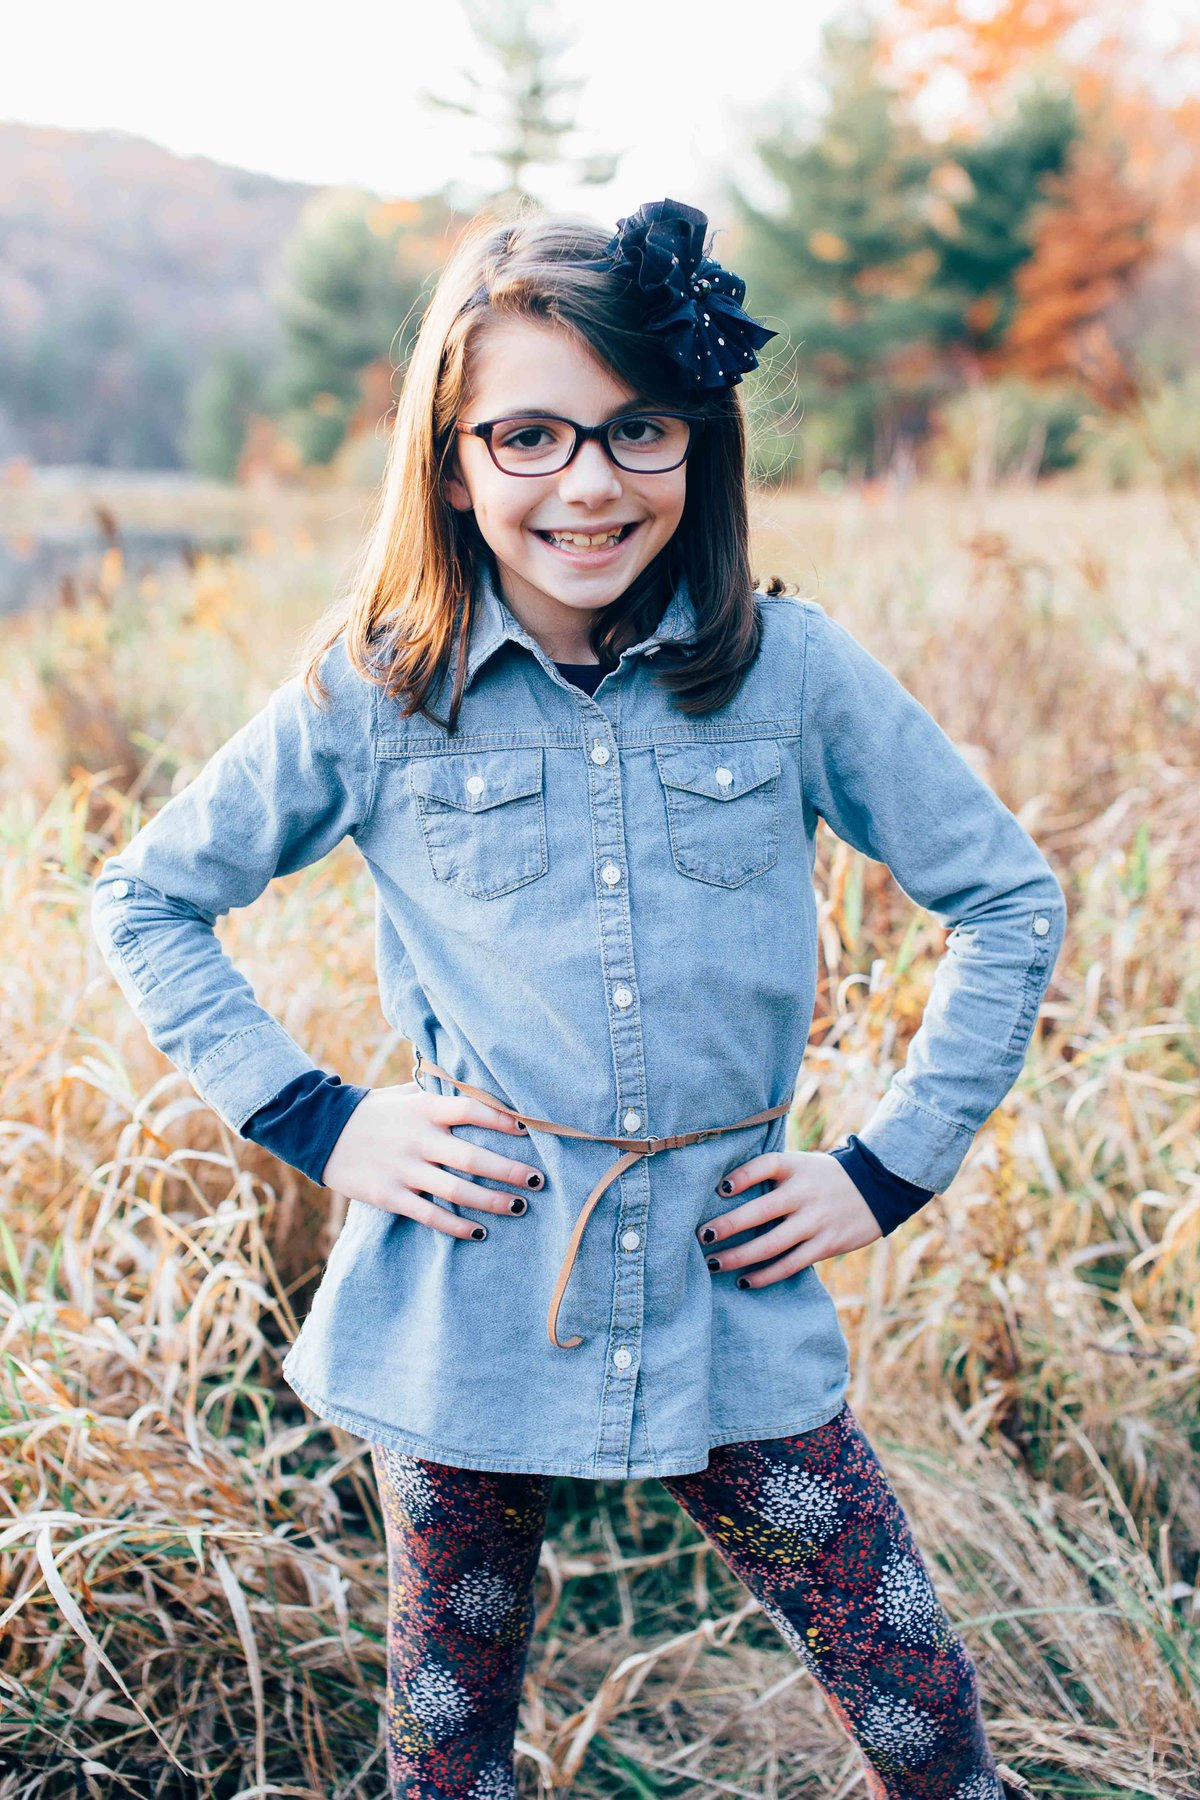 Alyssa Joy & Co. New Hampshire Children's Photographer-18